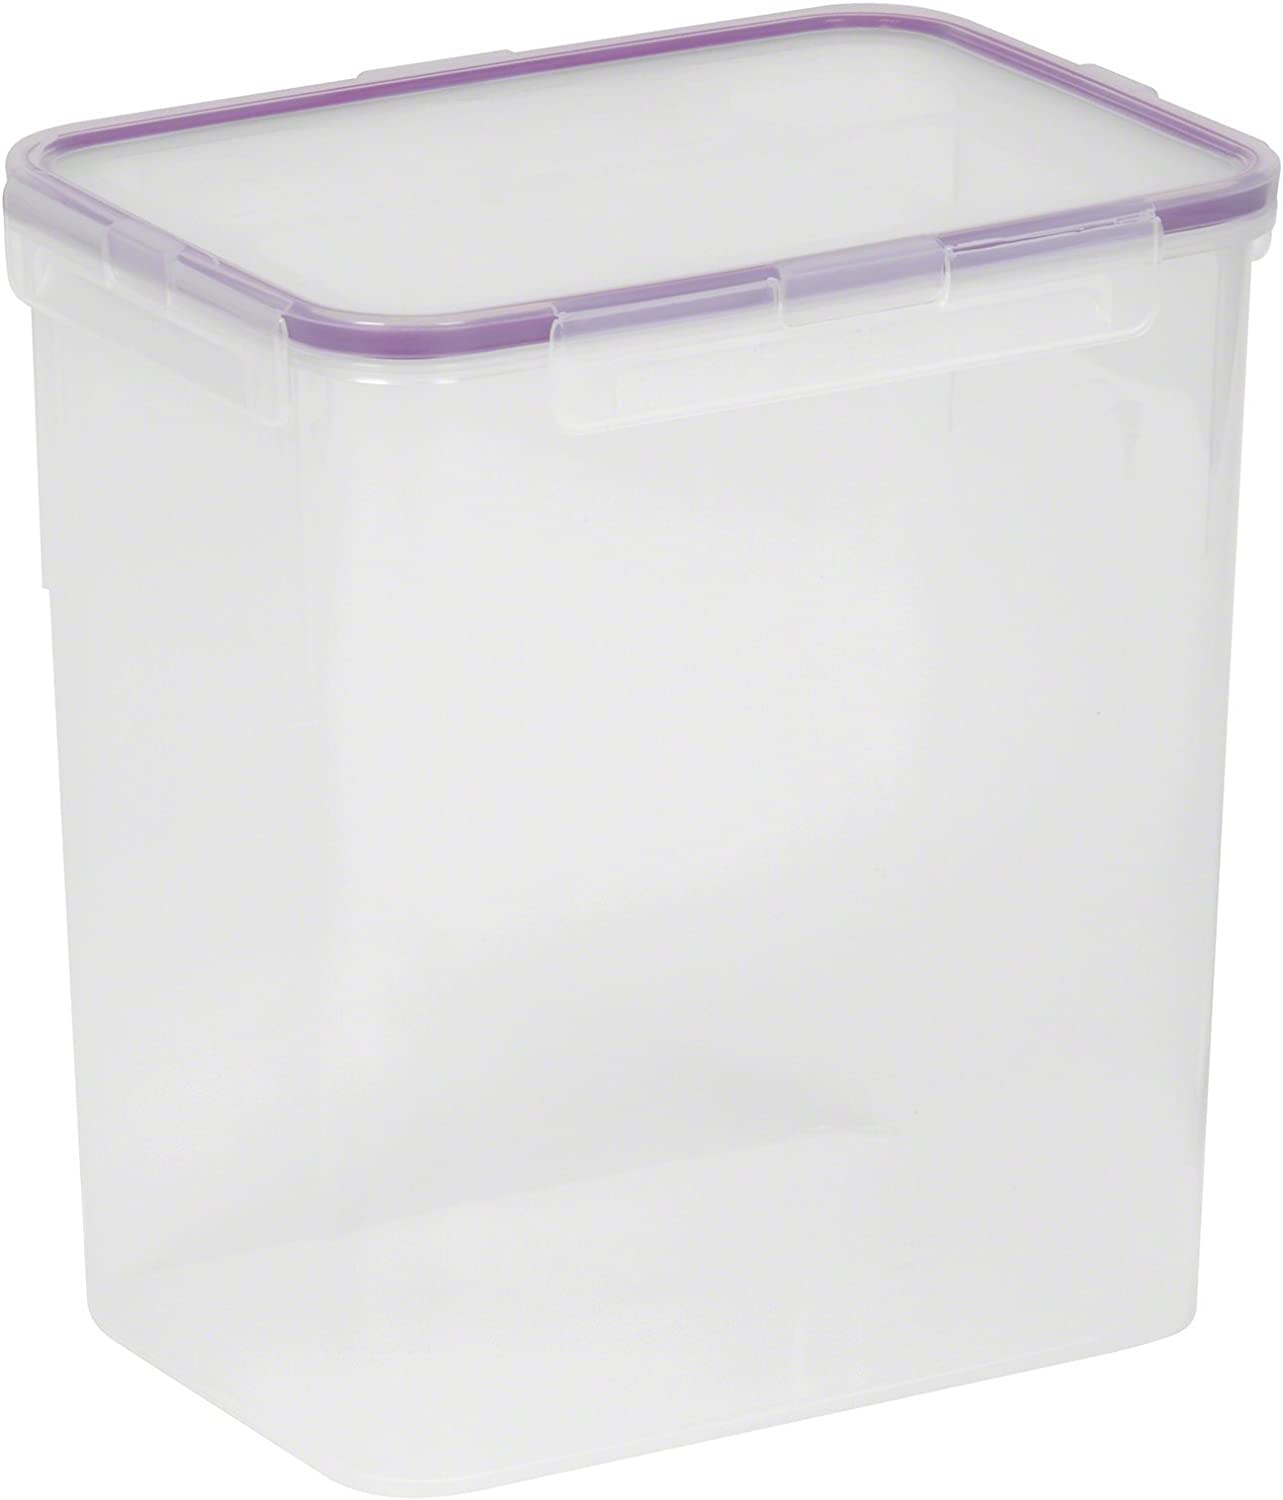 Snapware 885941851931 Airtight 23-Cup Rectangular Food Storage Container, Clear